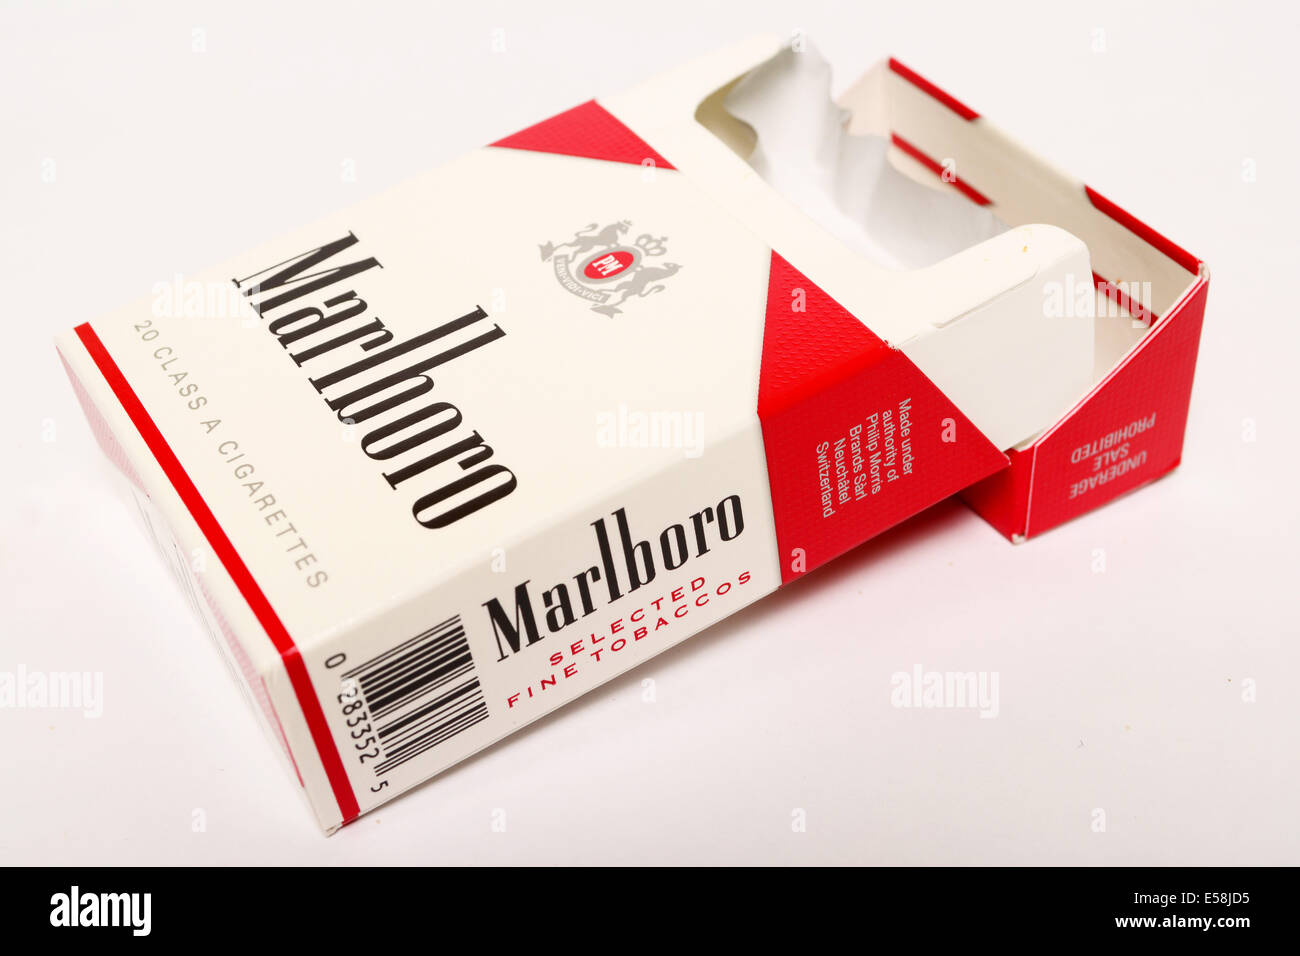 Buy Glamour cartons online